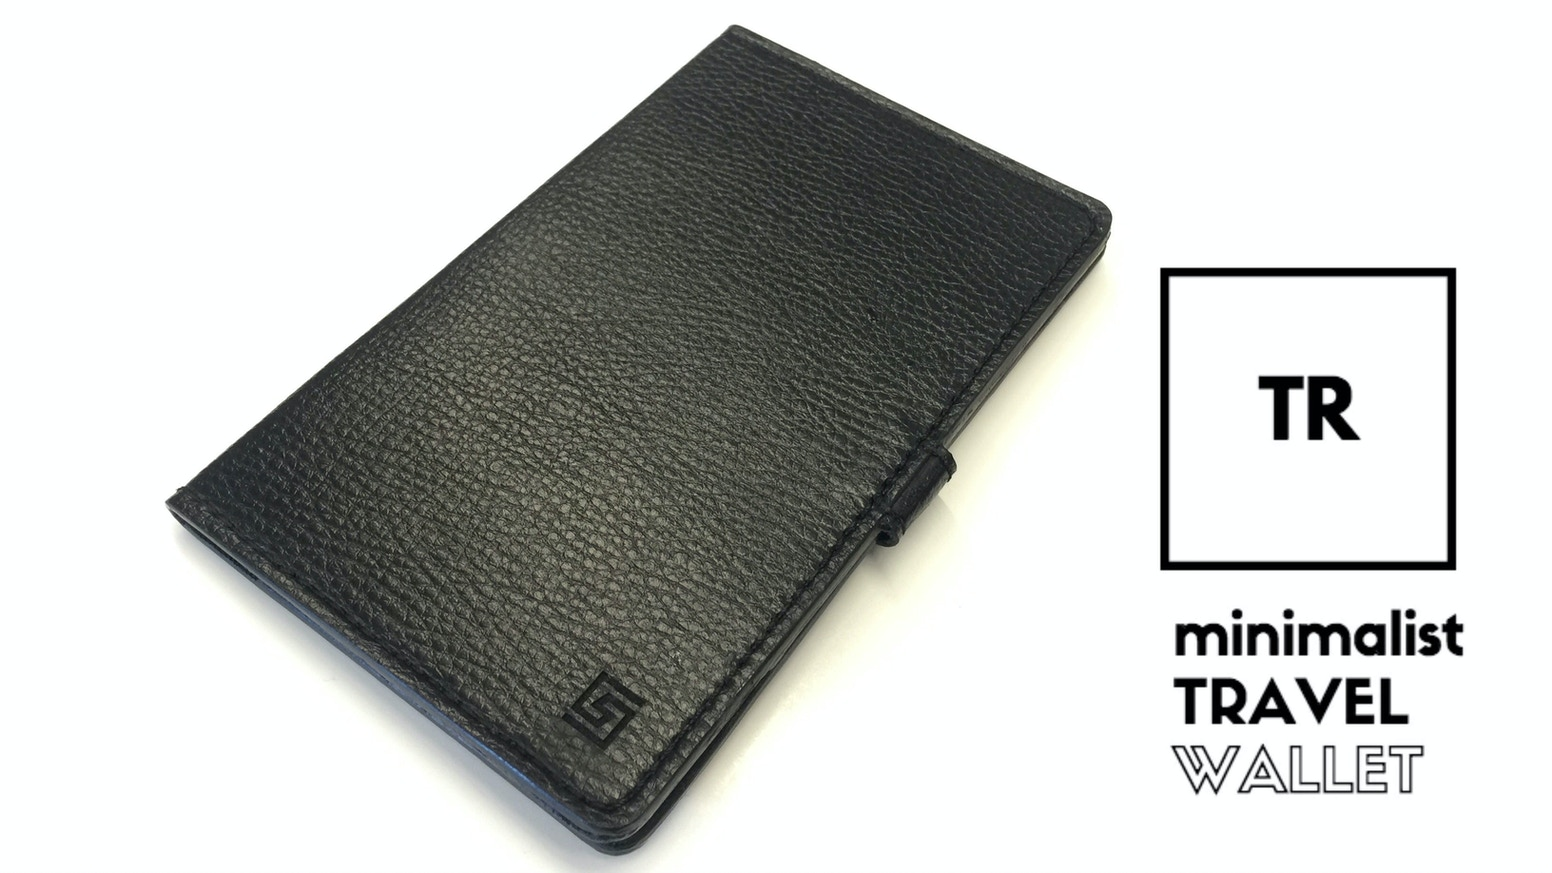 Minimalist and lightweight, the TR Travel Wallet easily carries your passport, bank cards, currency and other essentials